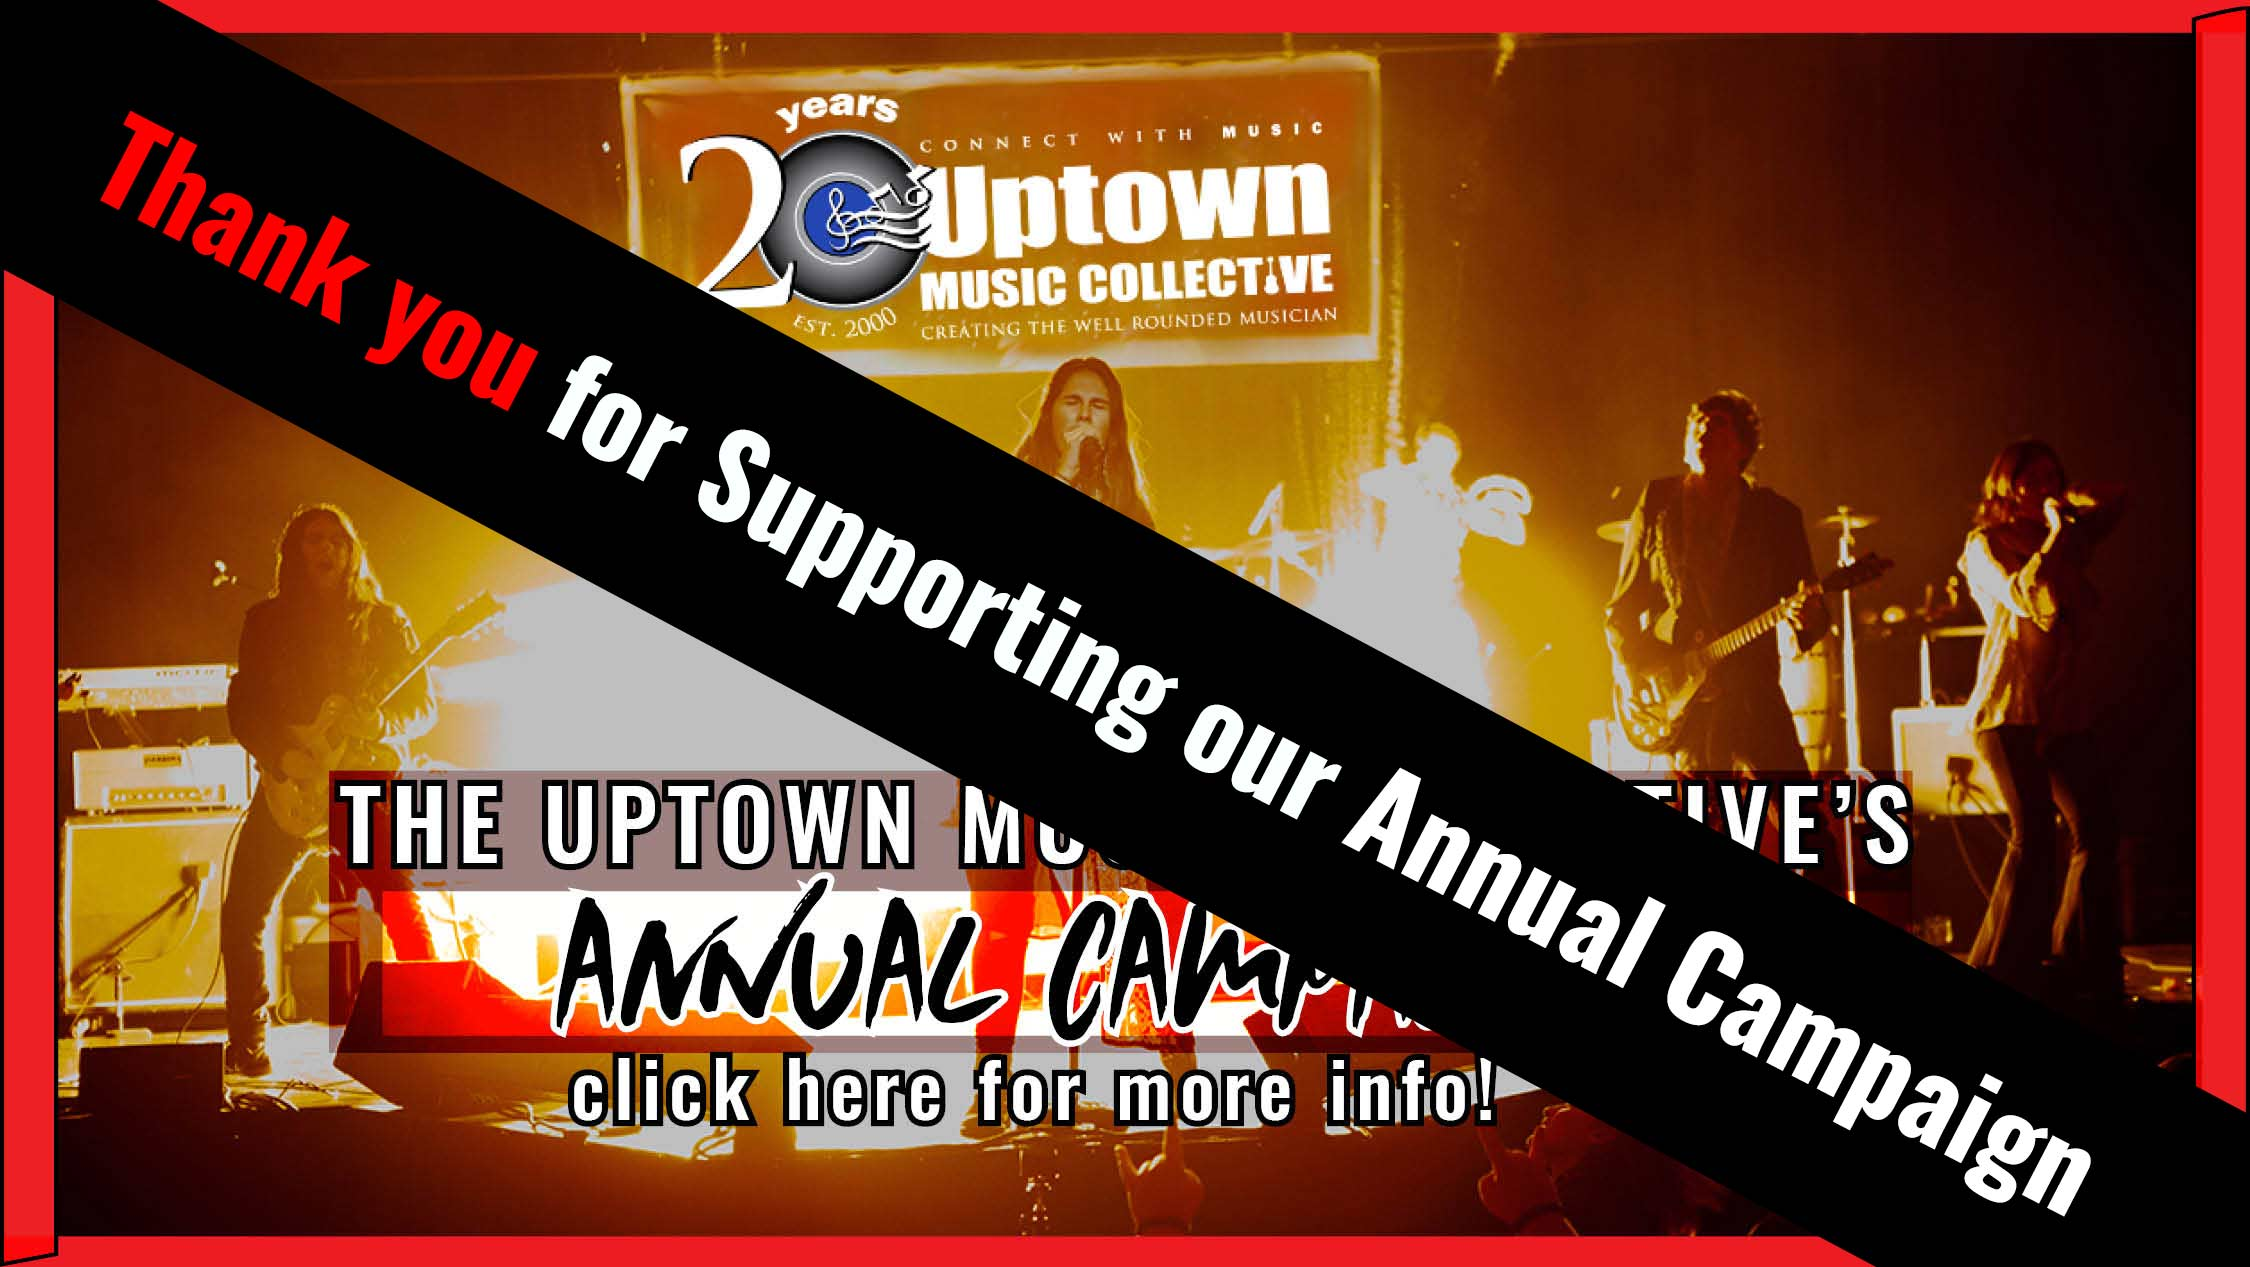 Thank You for Supporting the Uptown Music Collective's Annual Campaign